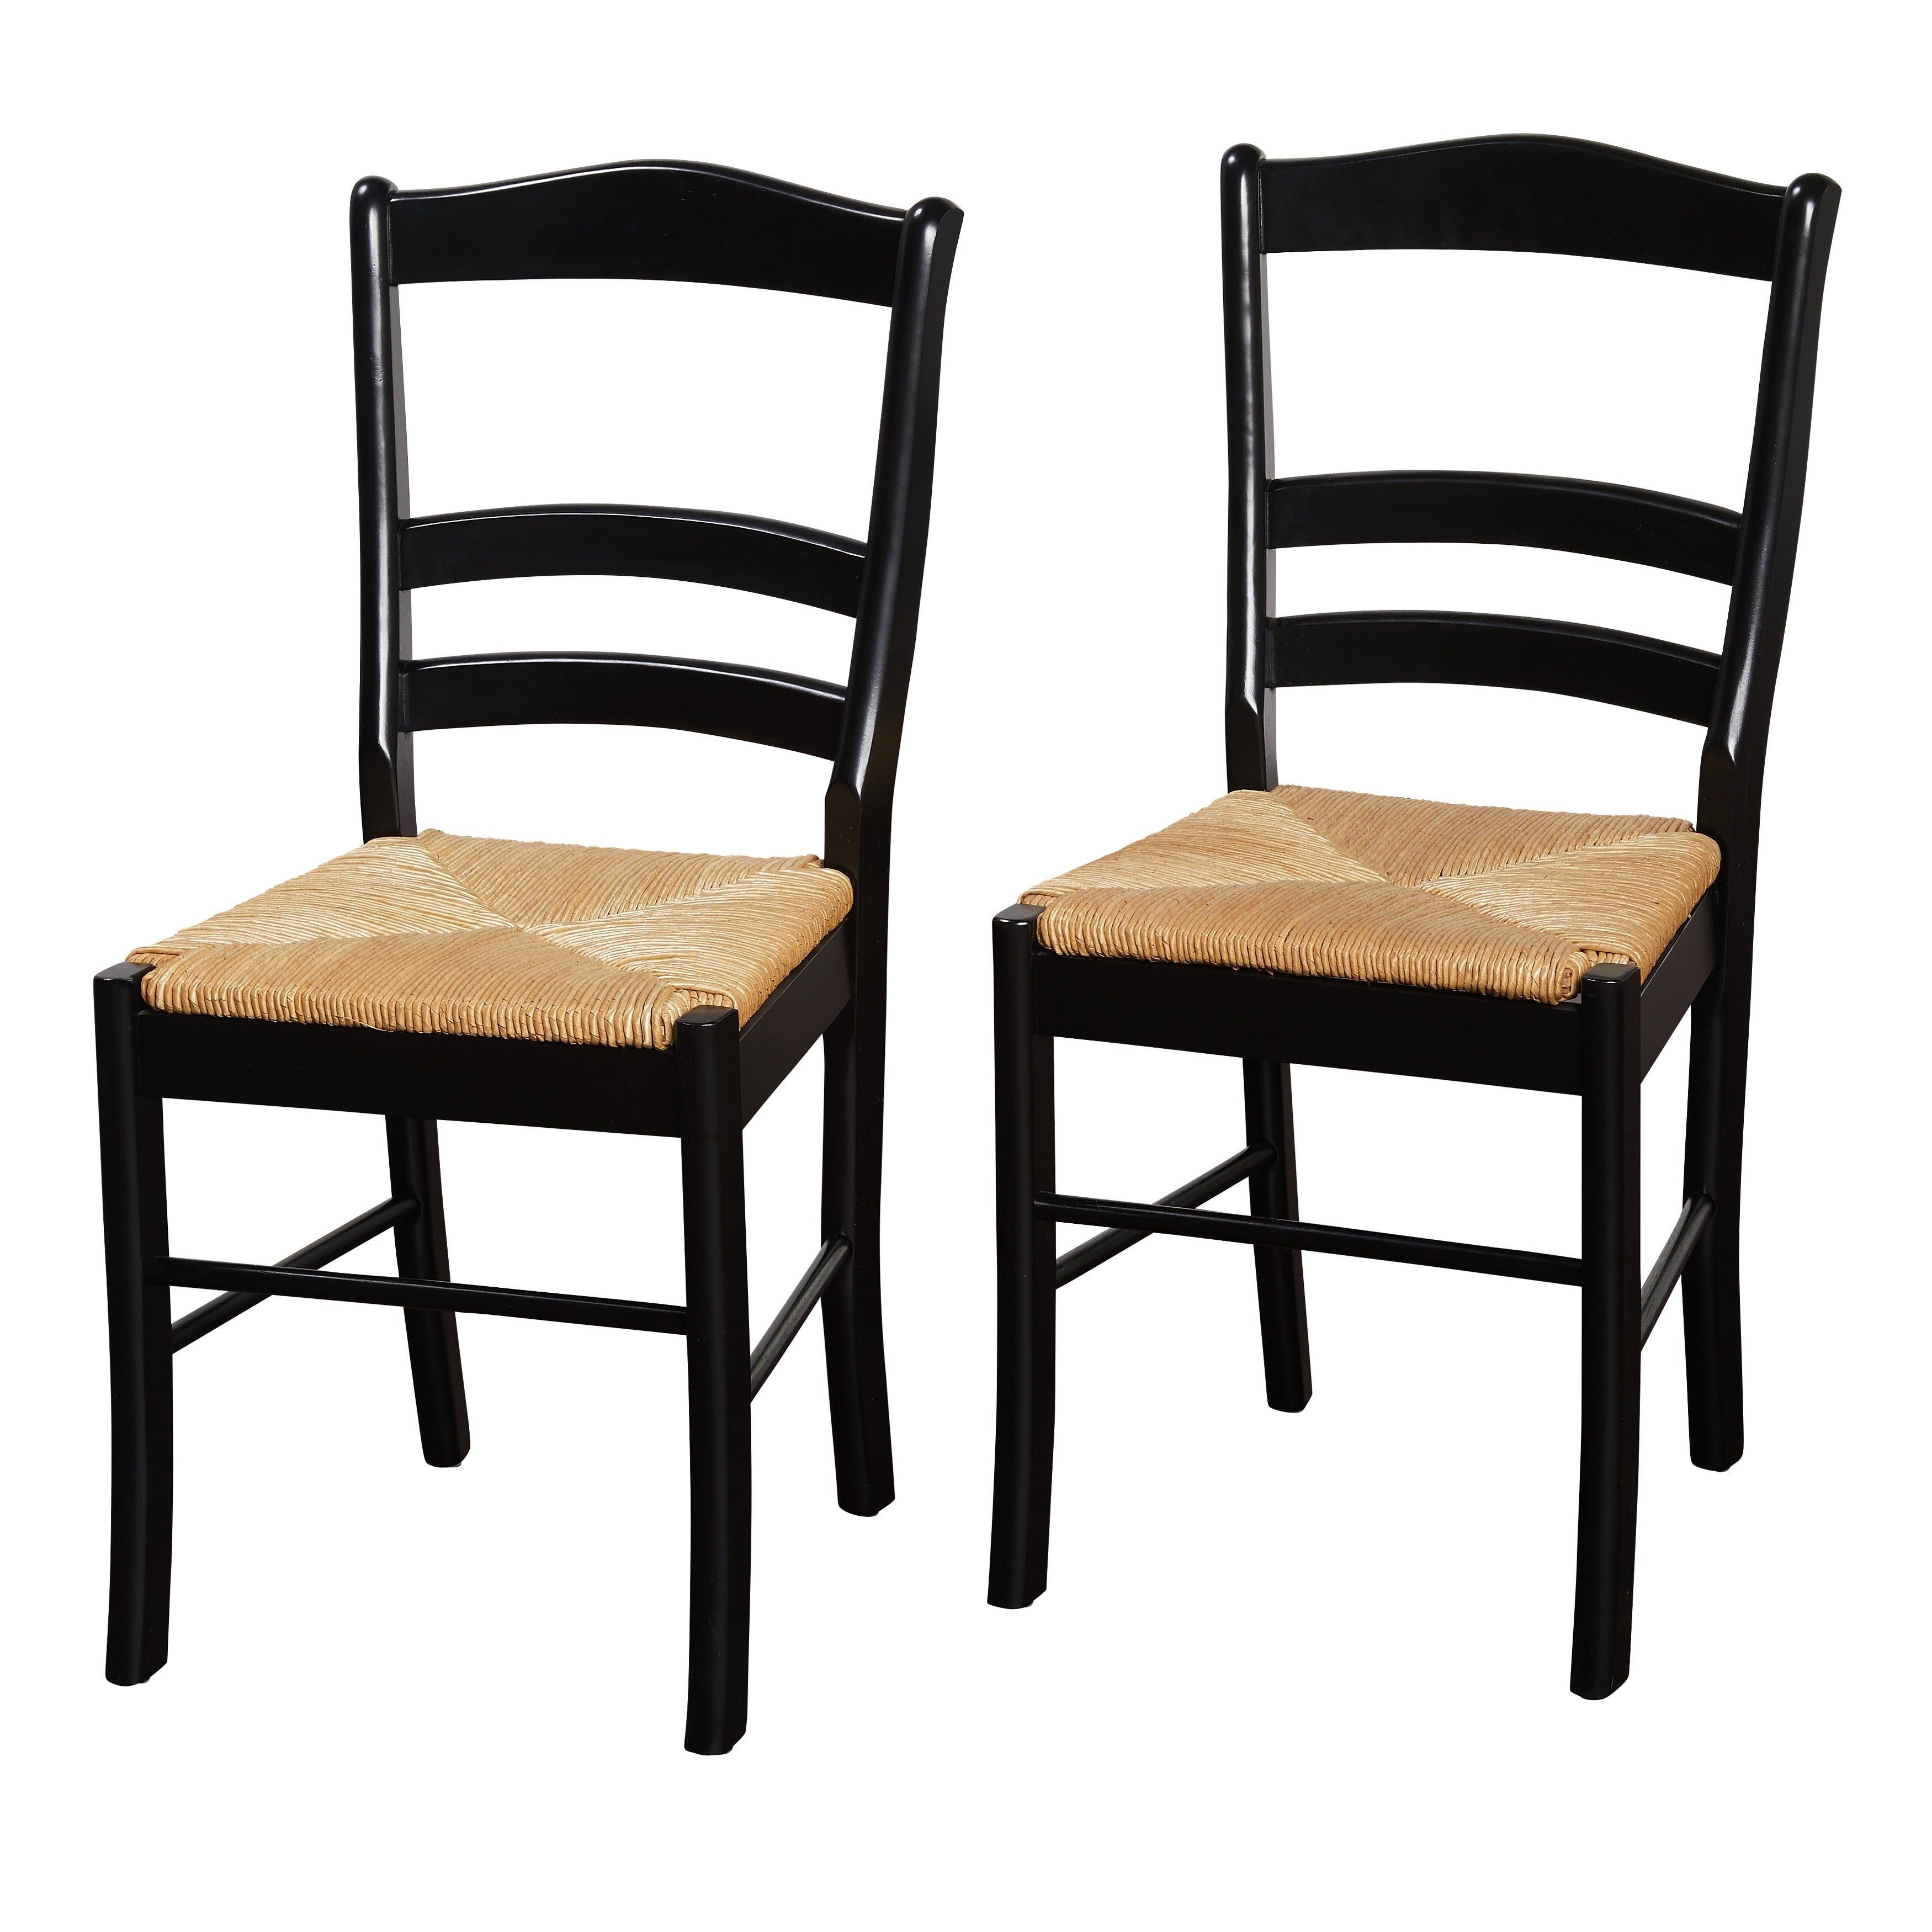 Simple Living Paloma Wooden Dining Chairs (Set of 12)  Solid wood